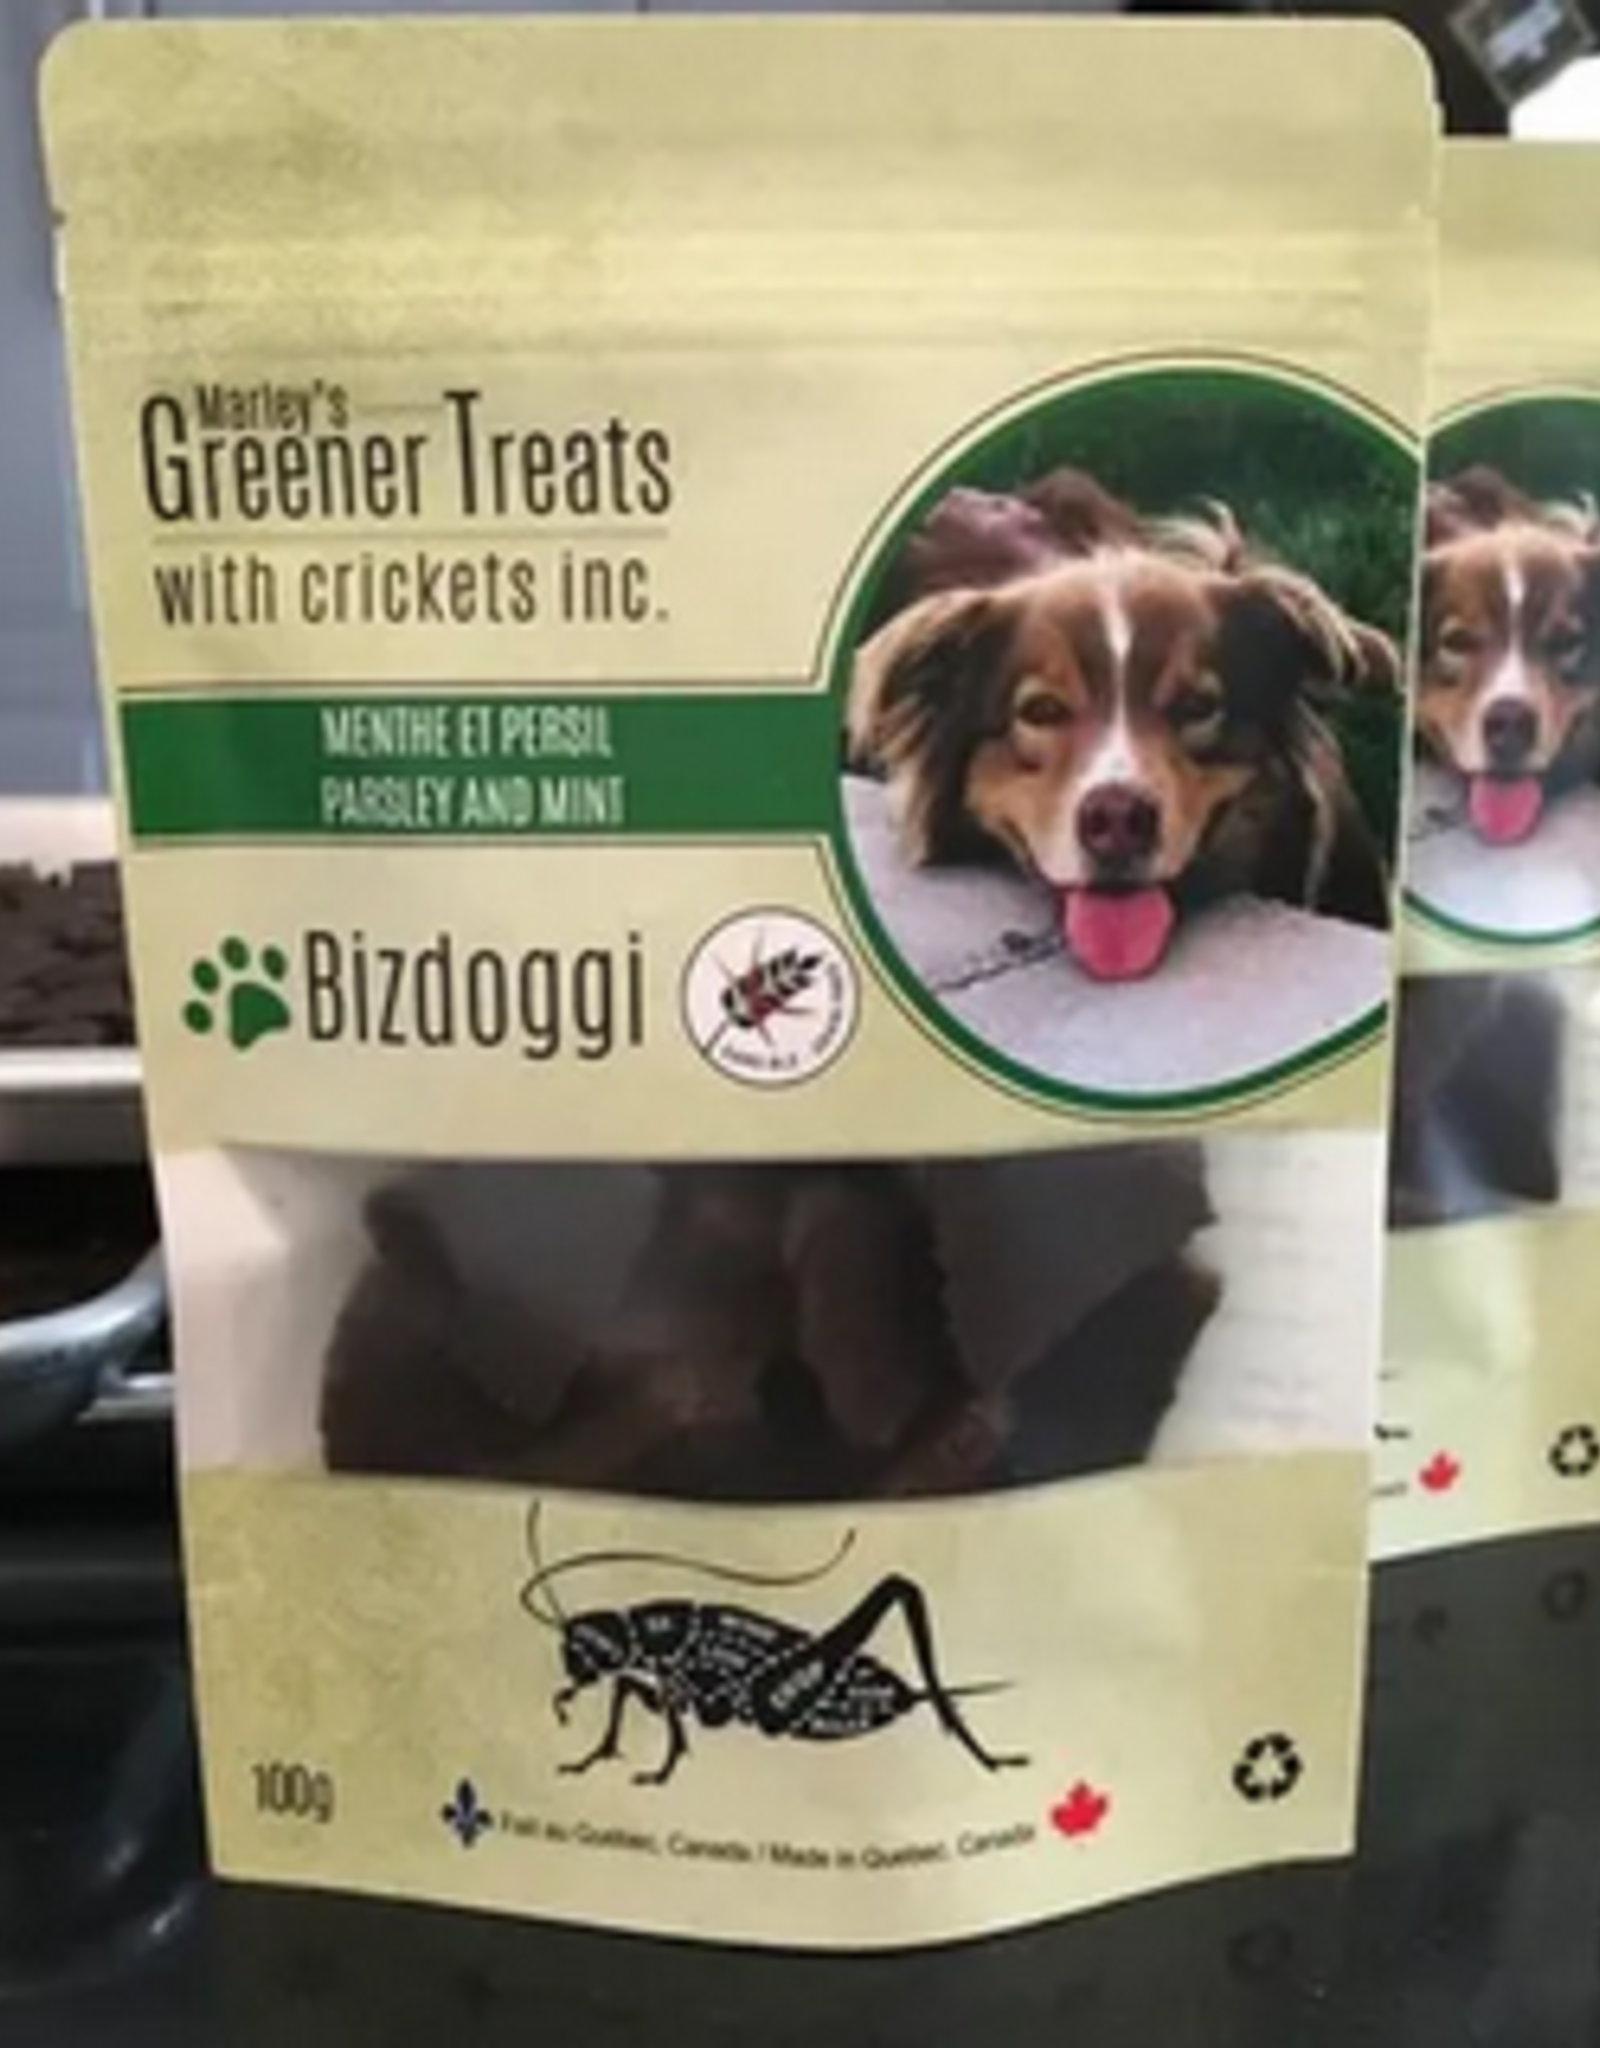 Marley's Greener Treats with Crickets - Parsley and Mint